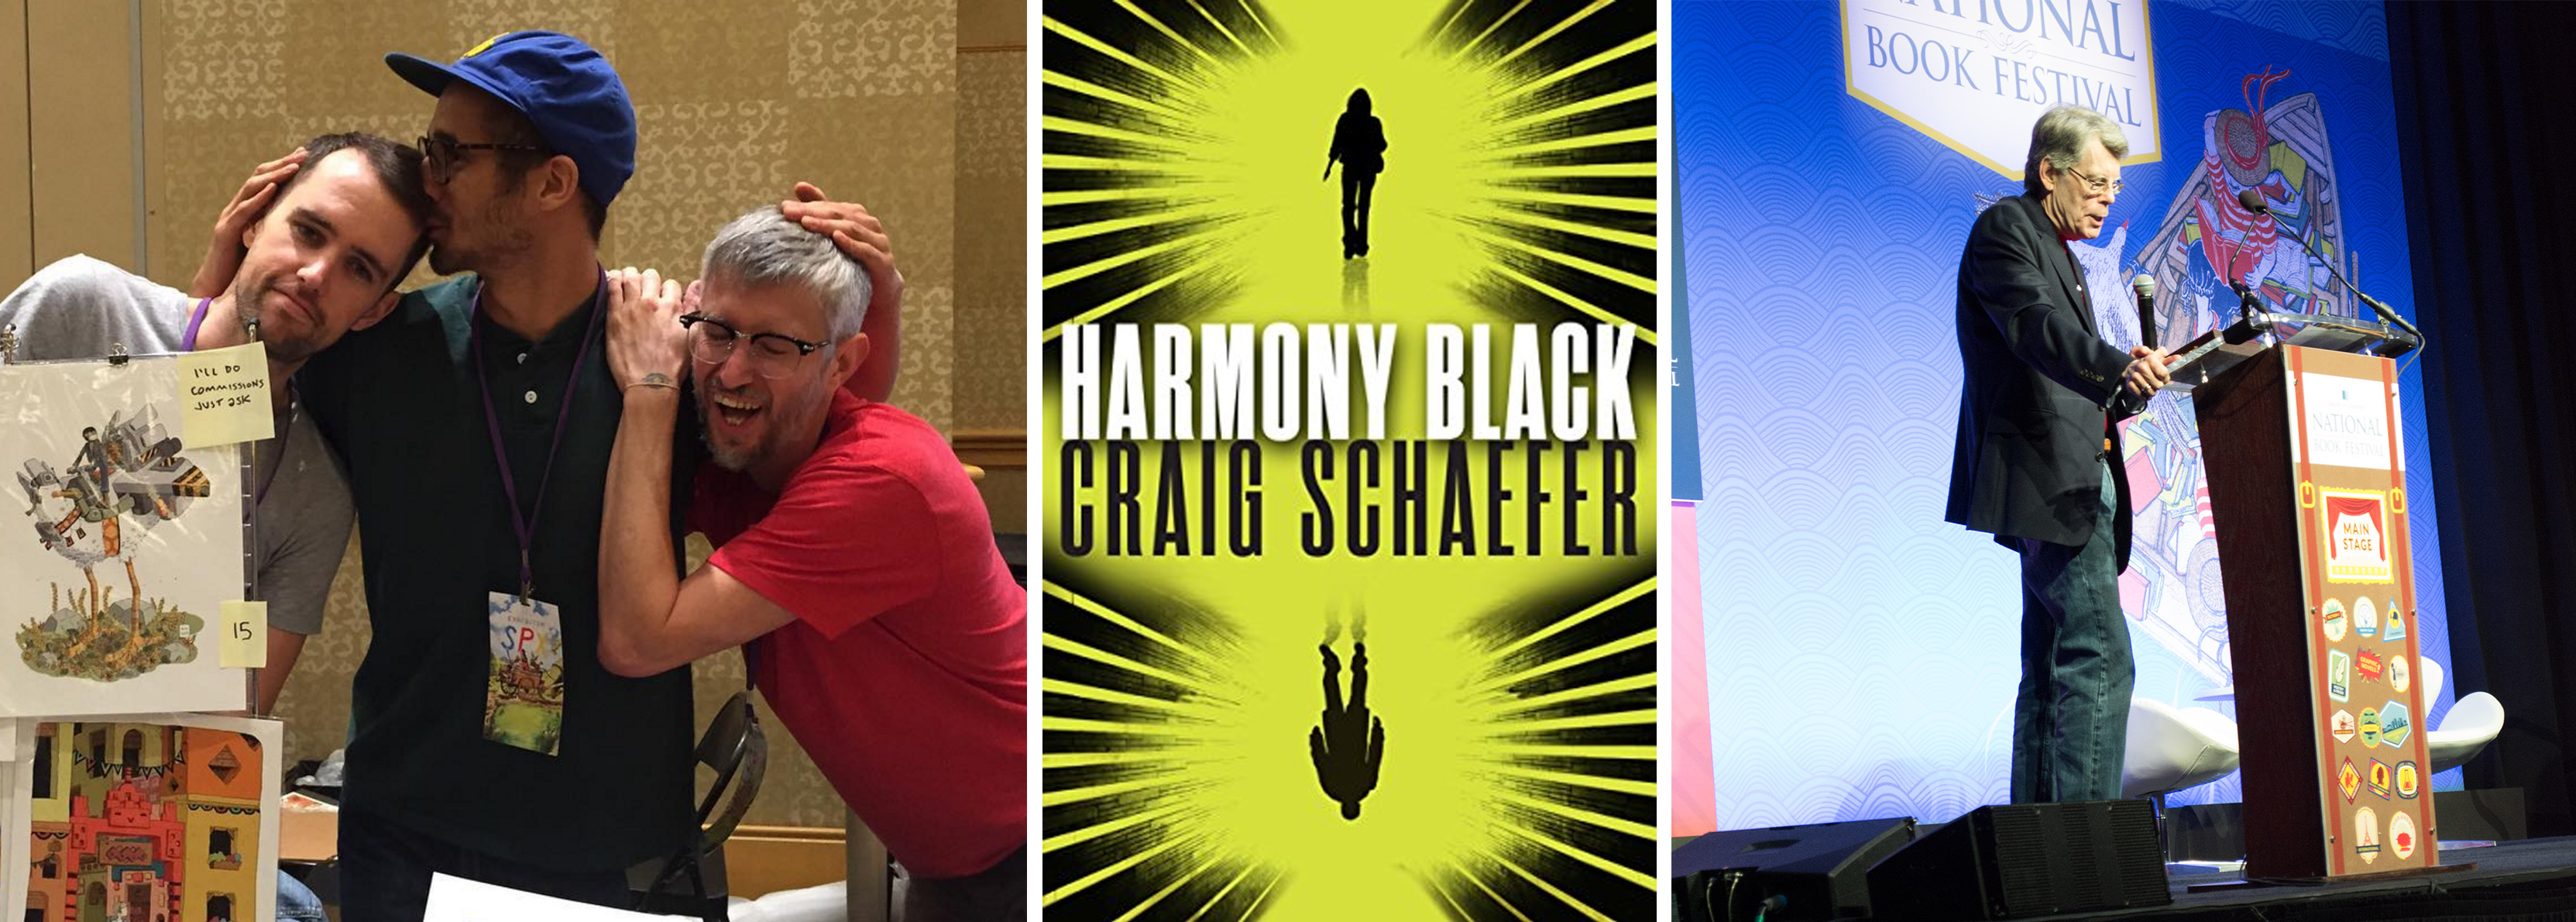 From left to right: Ben Sears, Dustin Harbin, and Mason Dickerson at SPX; Harmony Black by Craig Shaefer; Stephen King at the National Book Festival (photo credit: Kwesi Kennedy).